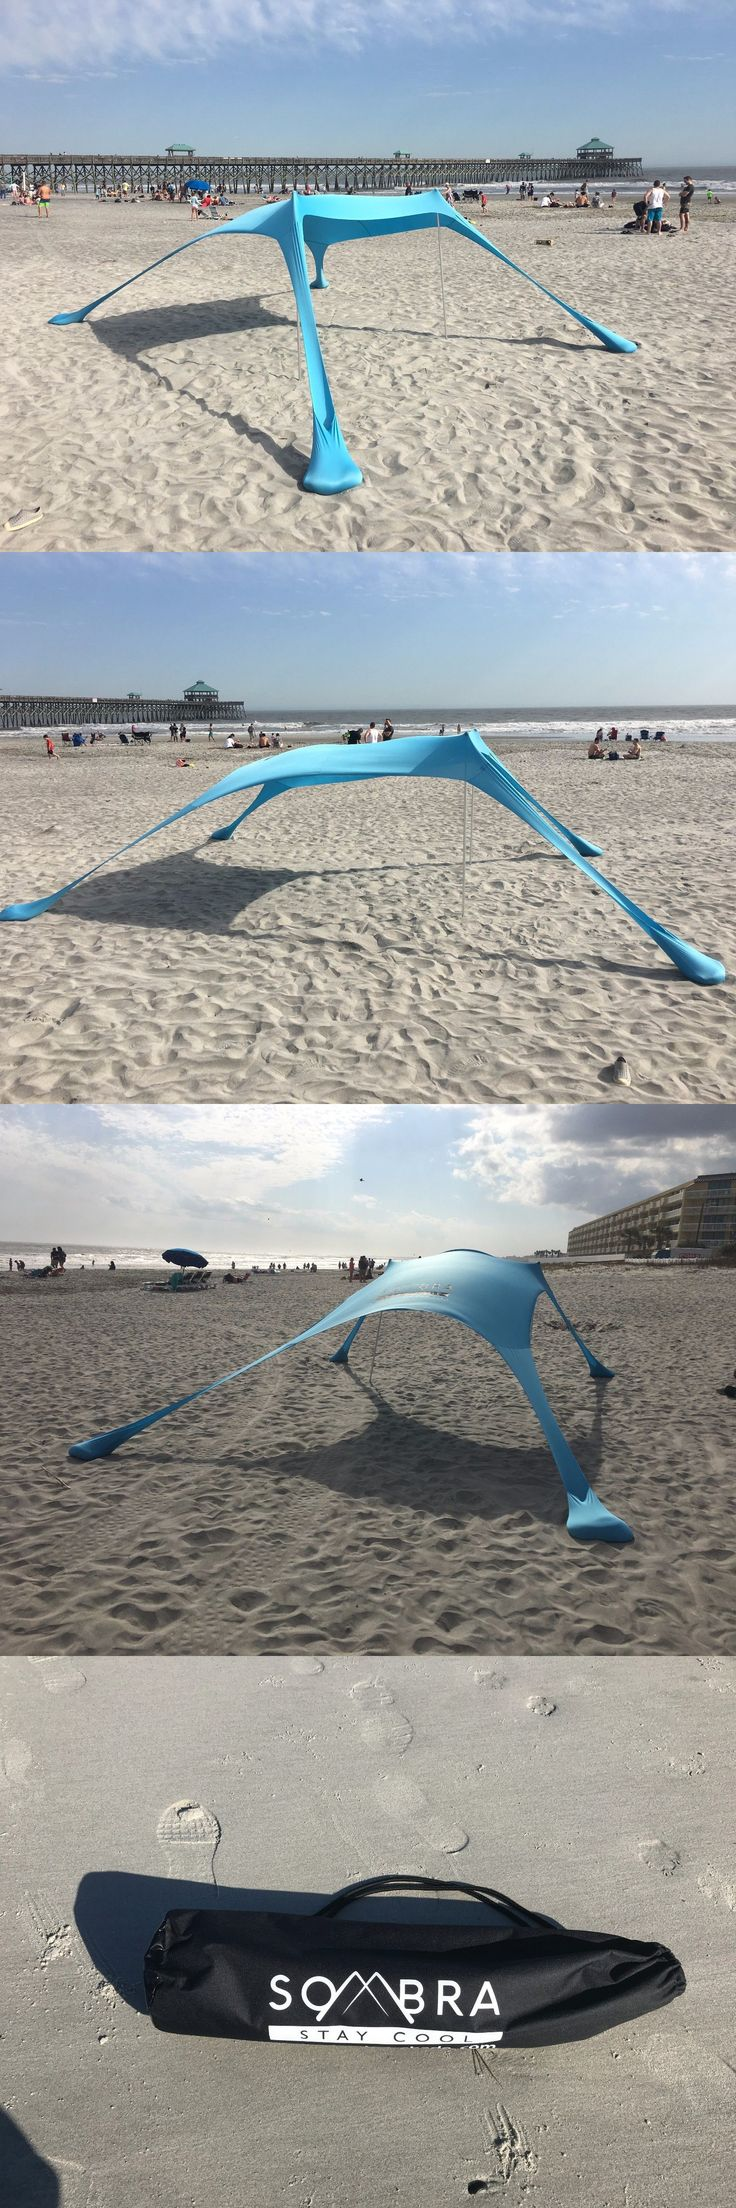 Other Tents and Canopies 179019: Beach Sun Shade Tent Unique Design Small Light Portable Uv Protection Ultralight -> BUY IT NOW ONLY: $132 on eBay!